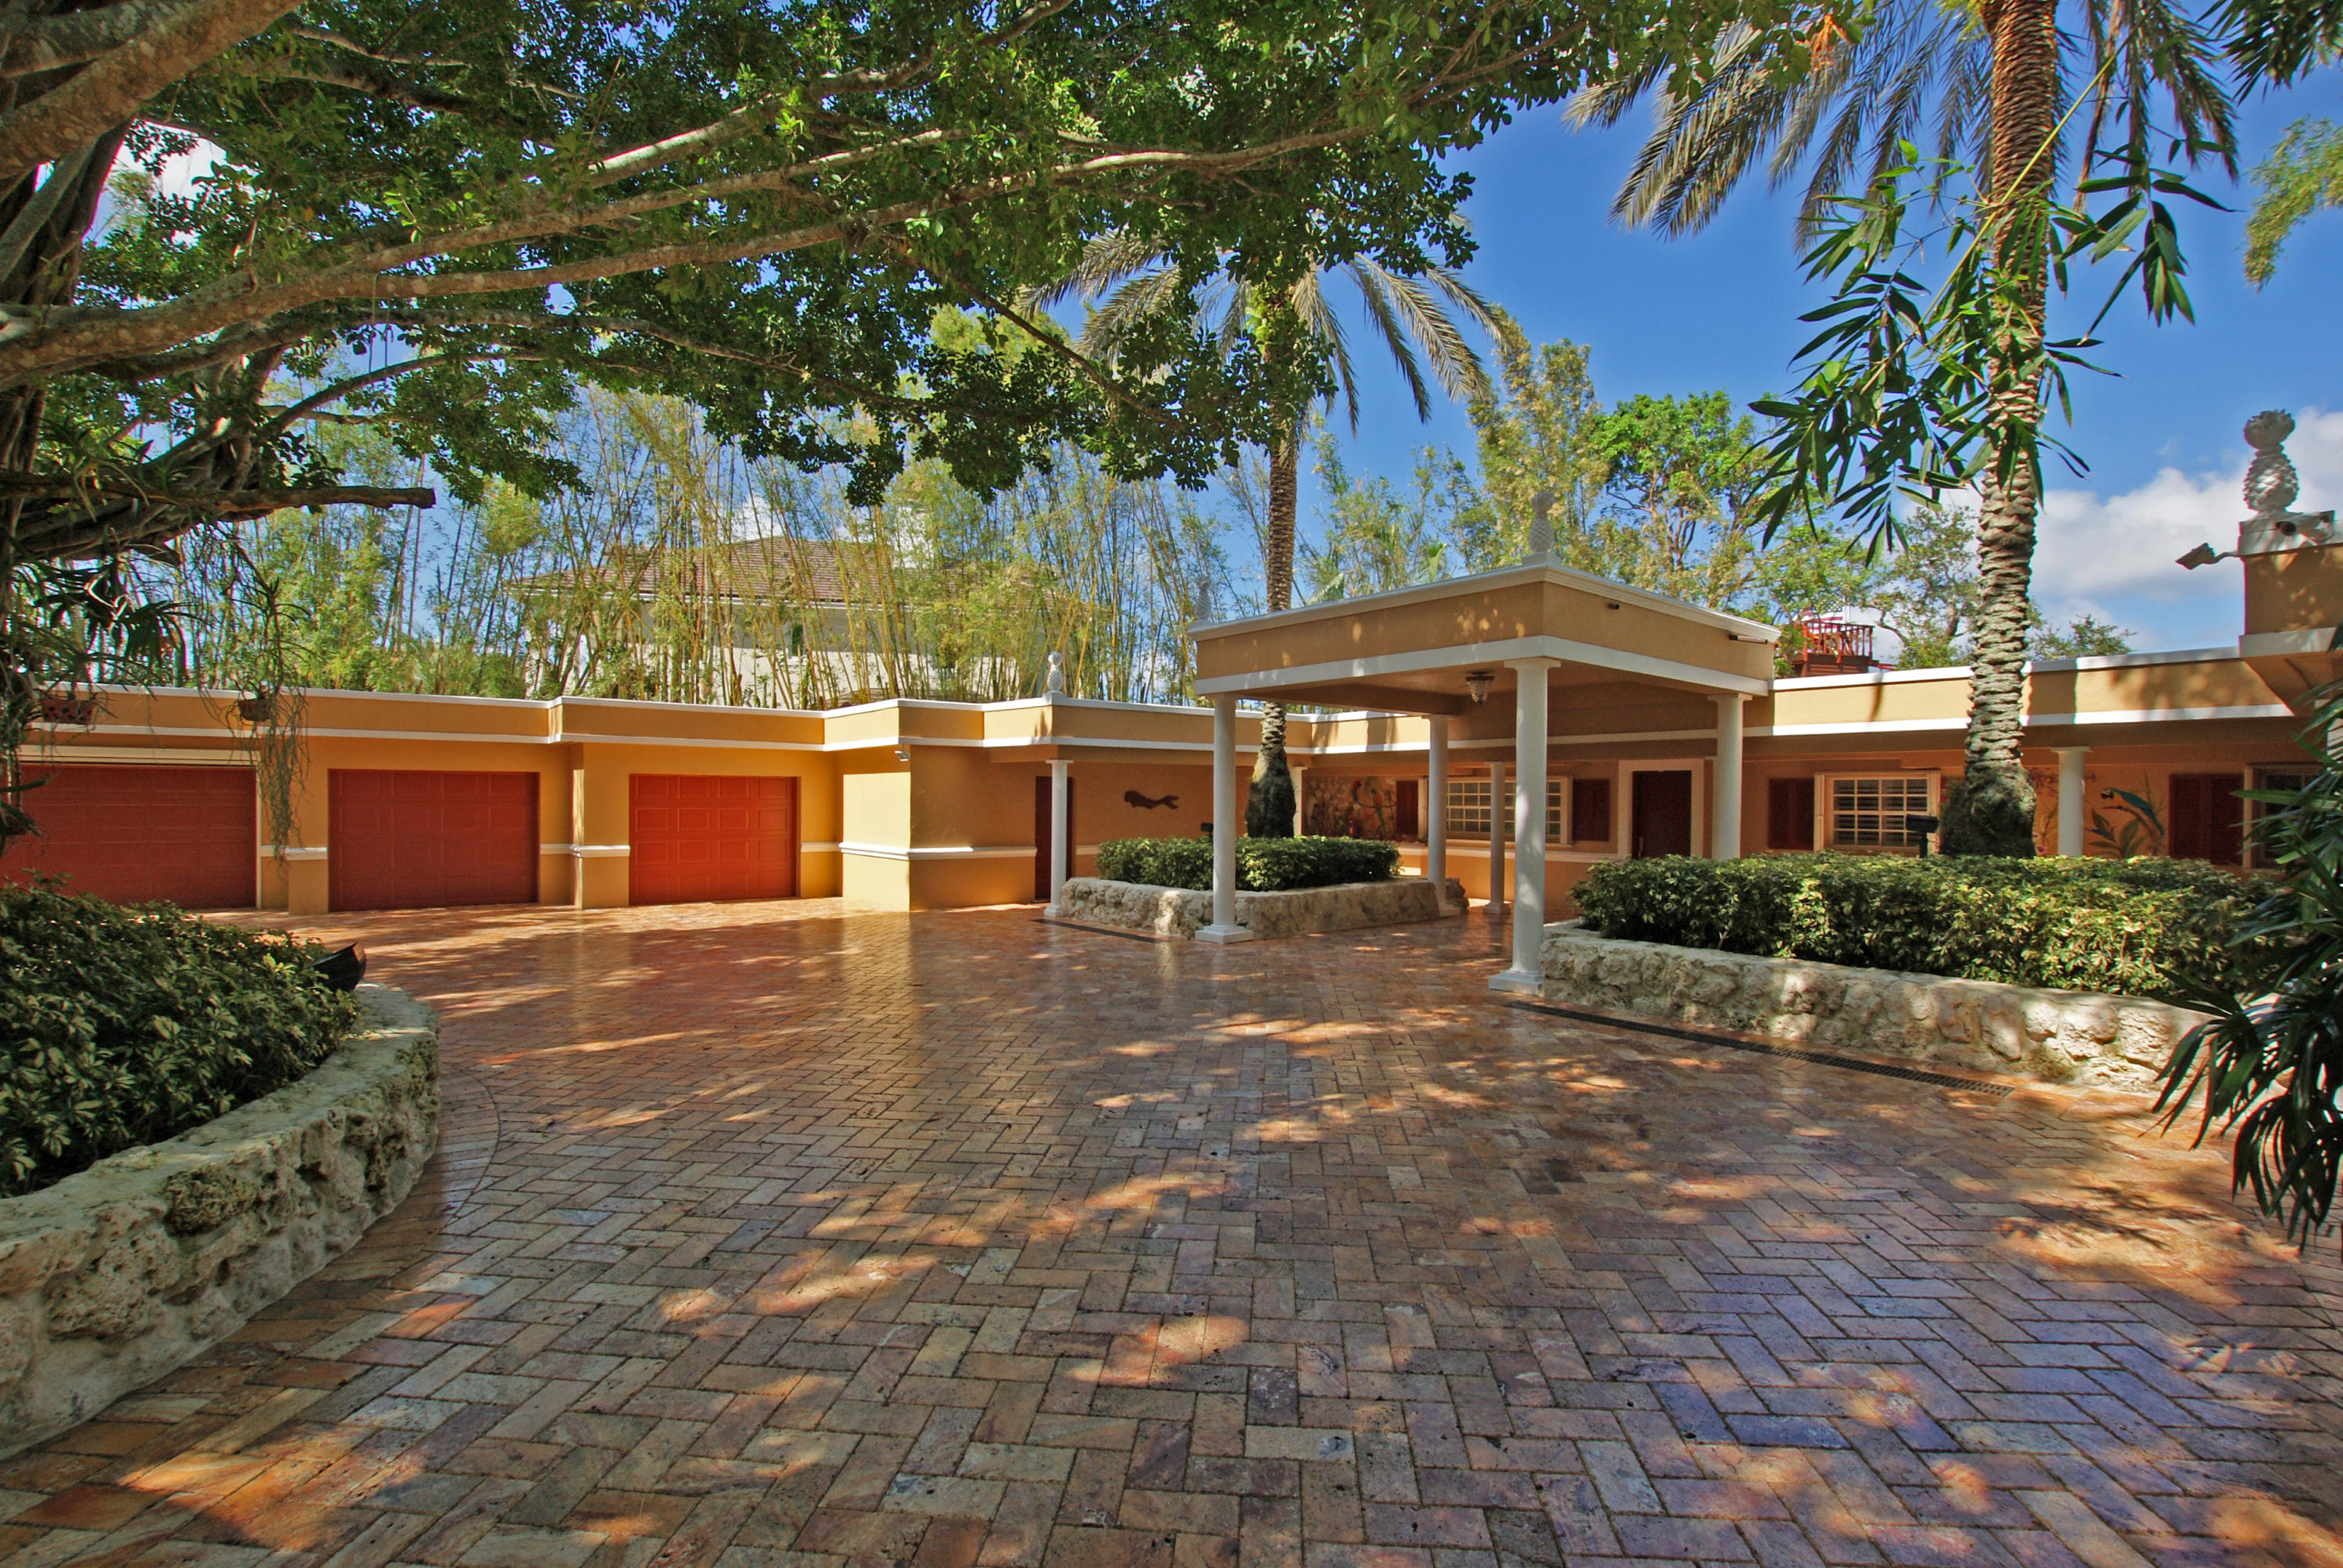 Florida Real Estate & Homes for Sale | Water Pointe Realty Group